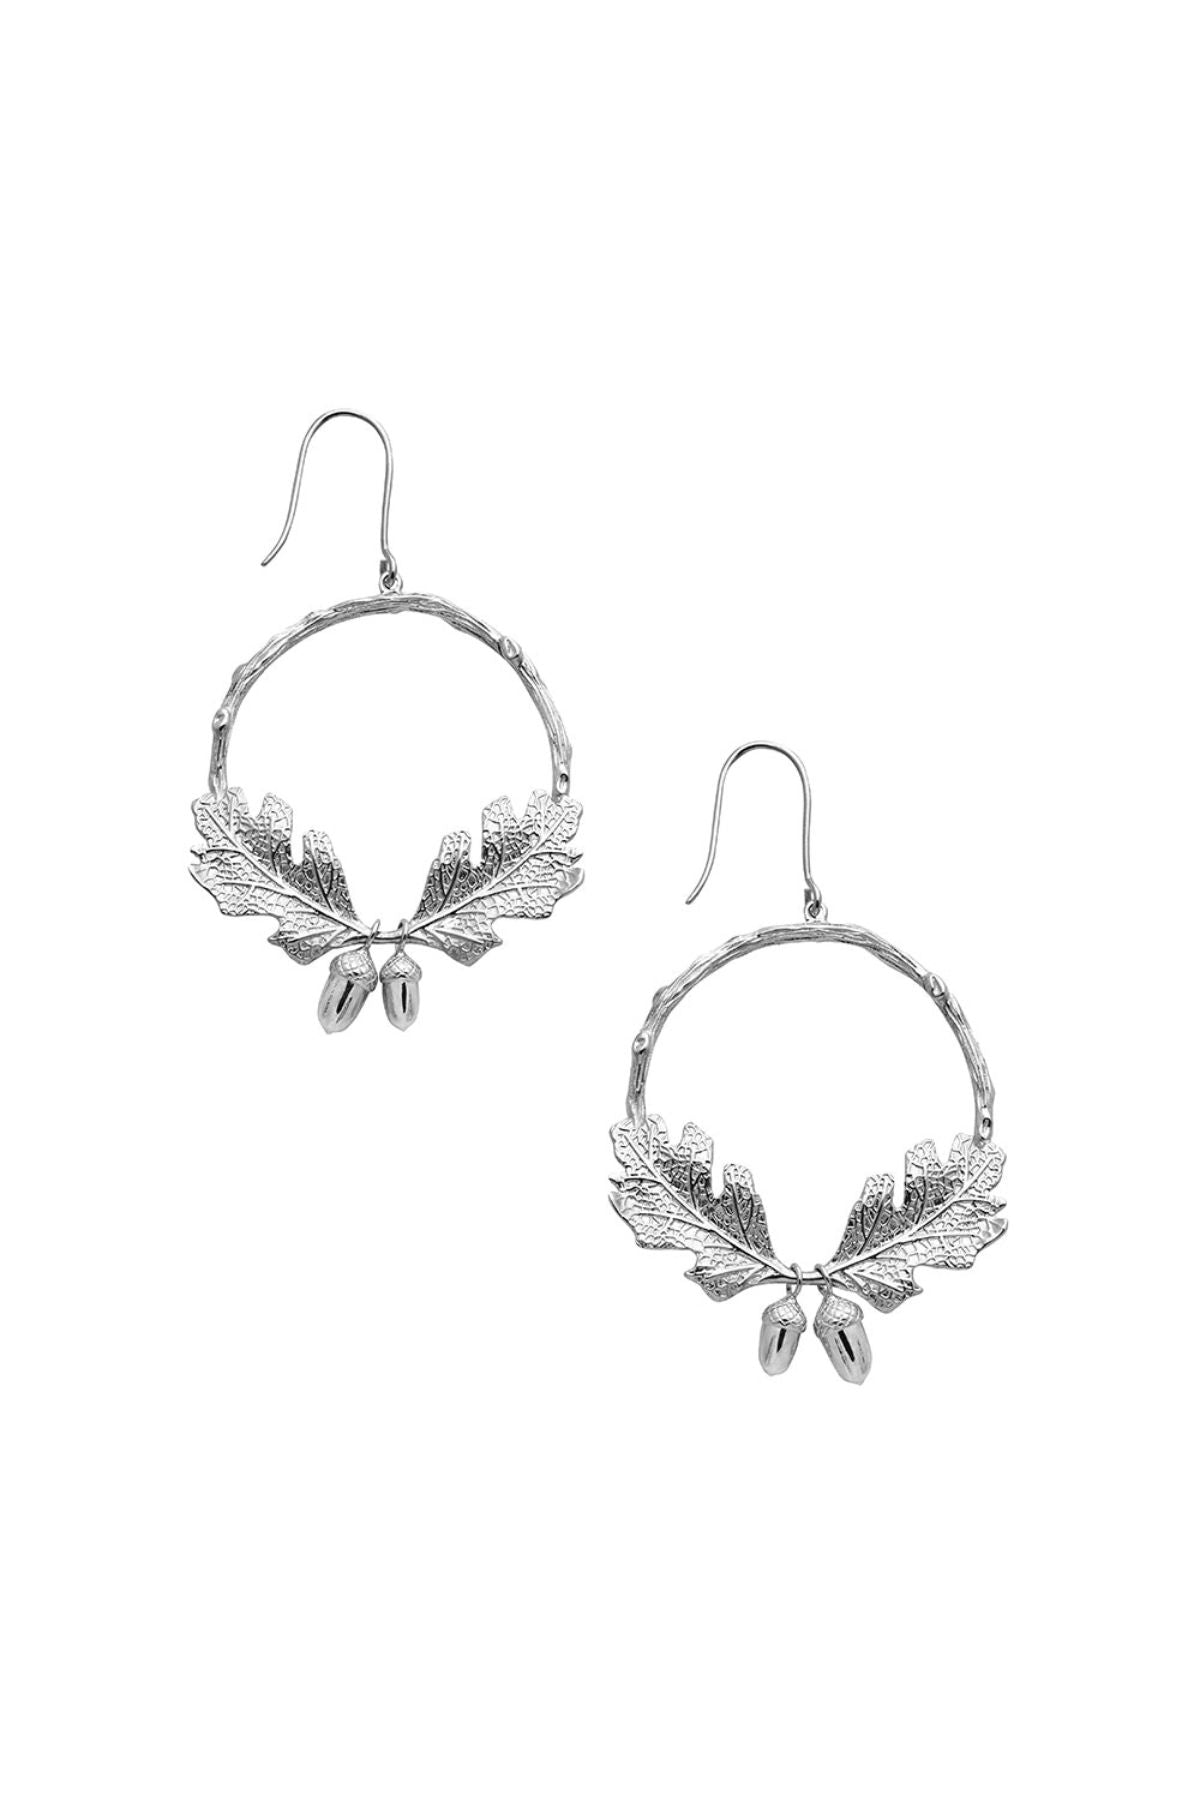 Karen Walker Acorn and Leaf Wreath Earrings // Silver